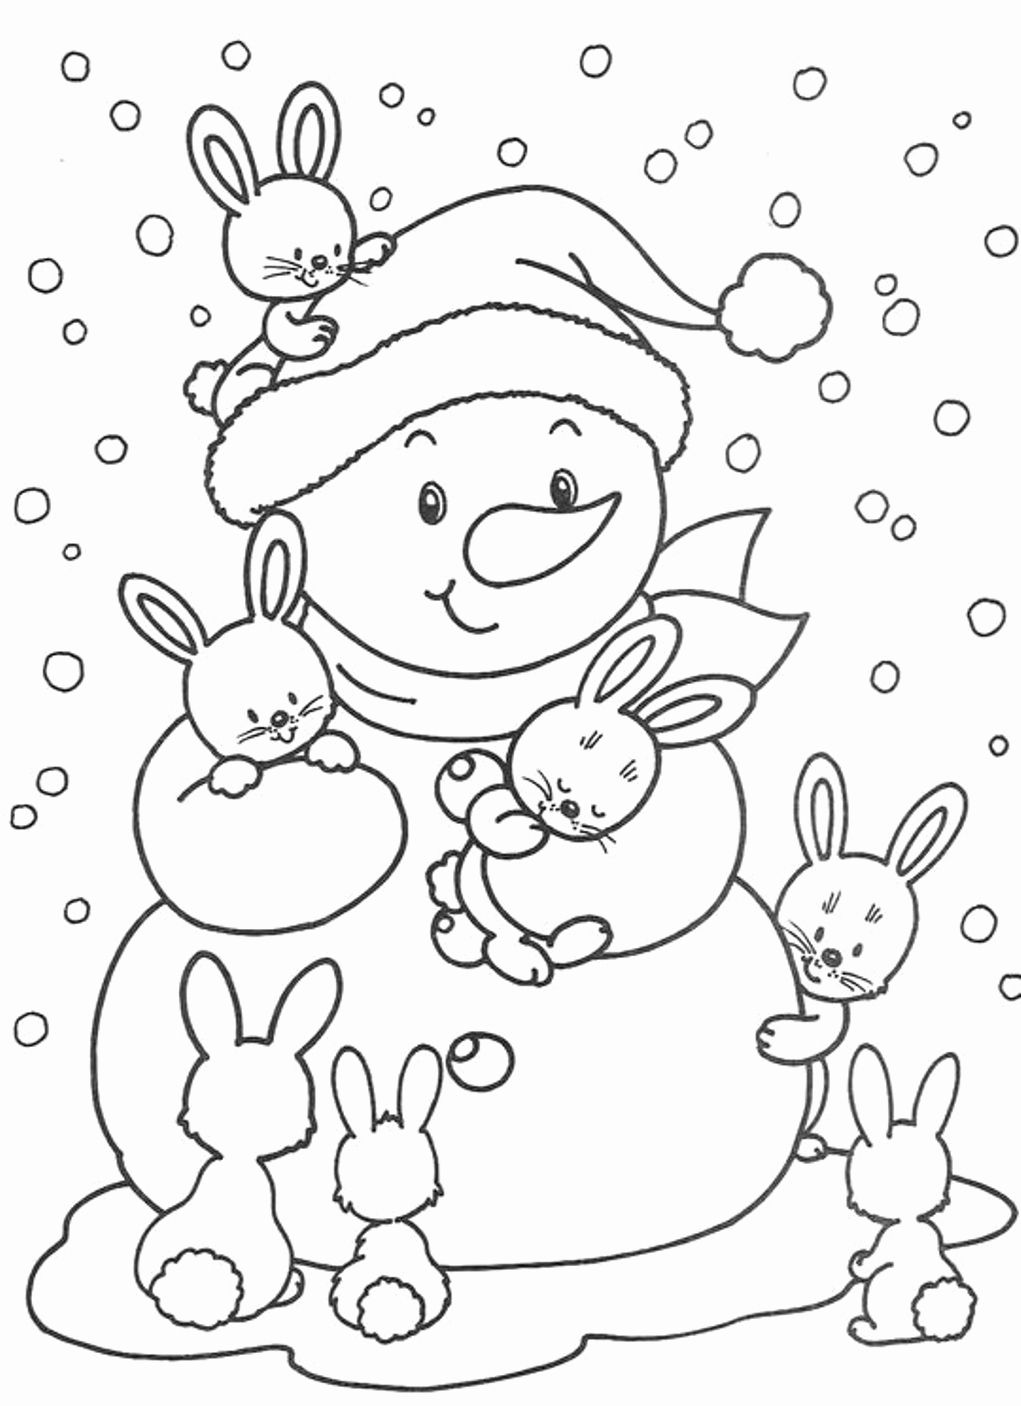 Free Printable Winter Holiday Coloring Pages Unique Winter Season